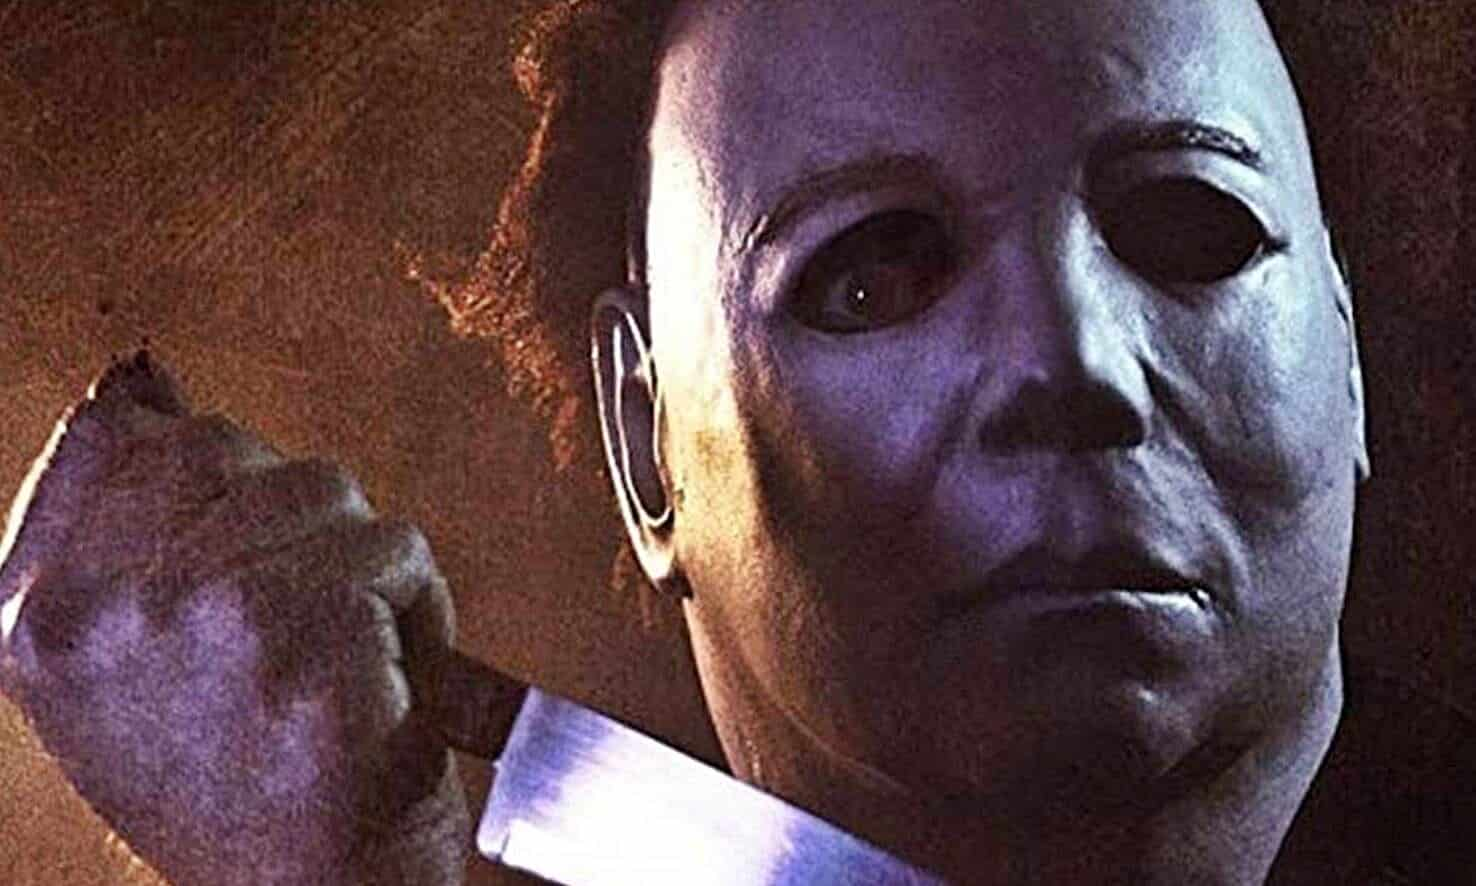 Michael Myers The Butcher Of Haddonfield